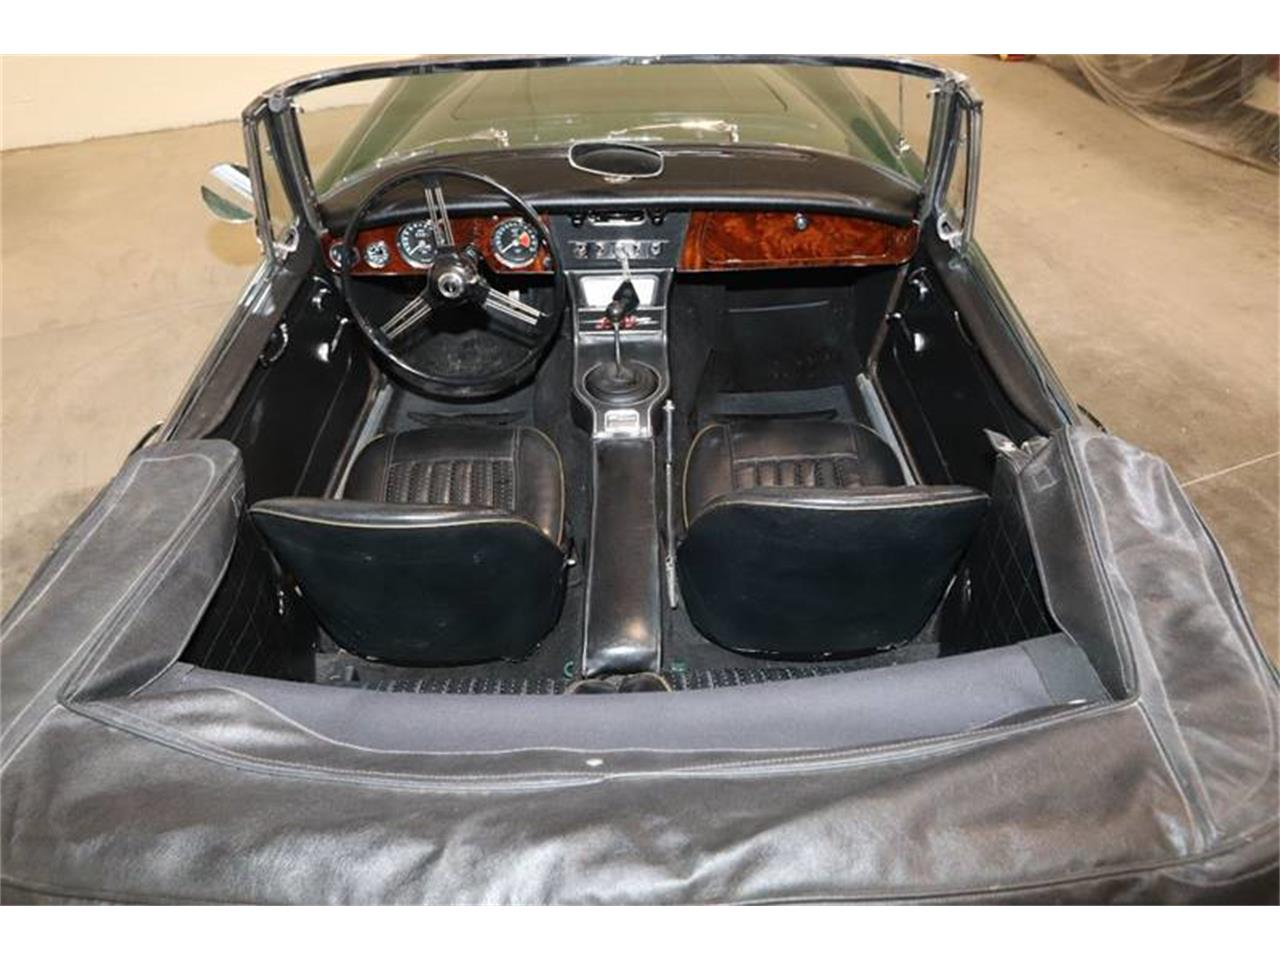 1967 Austin-Healey 3000 Mark III BJ8 for sale in St Louis, MO – photo 18